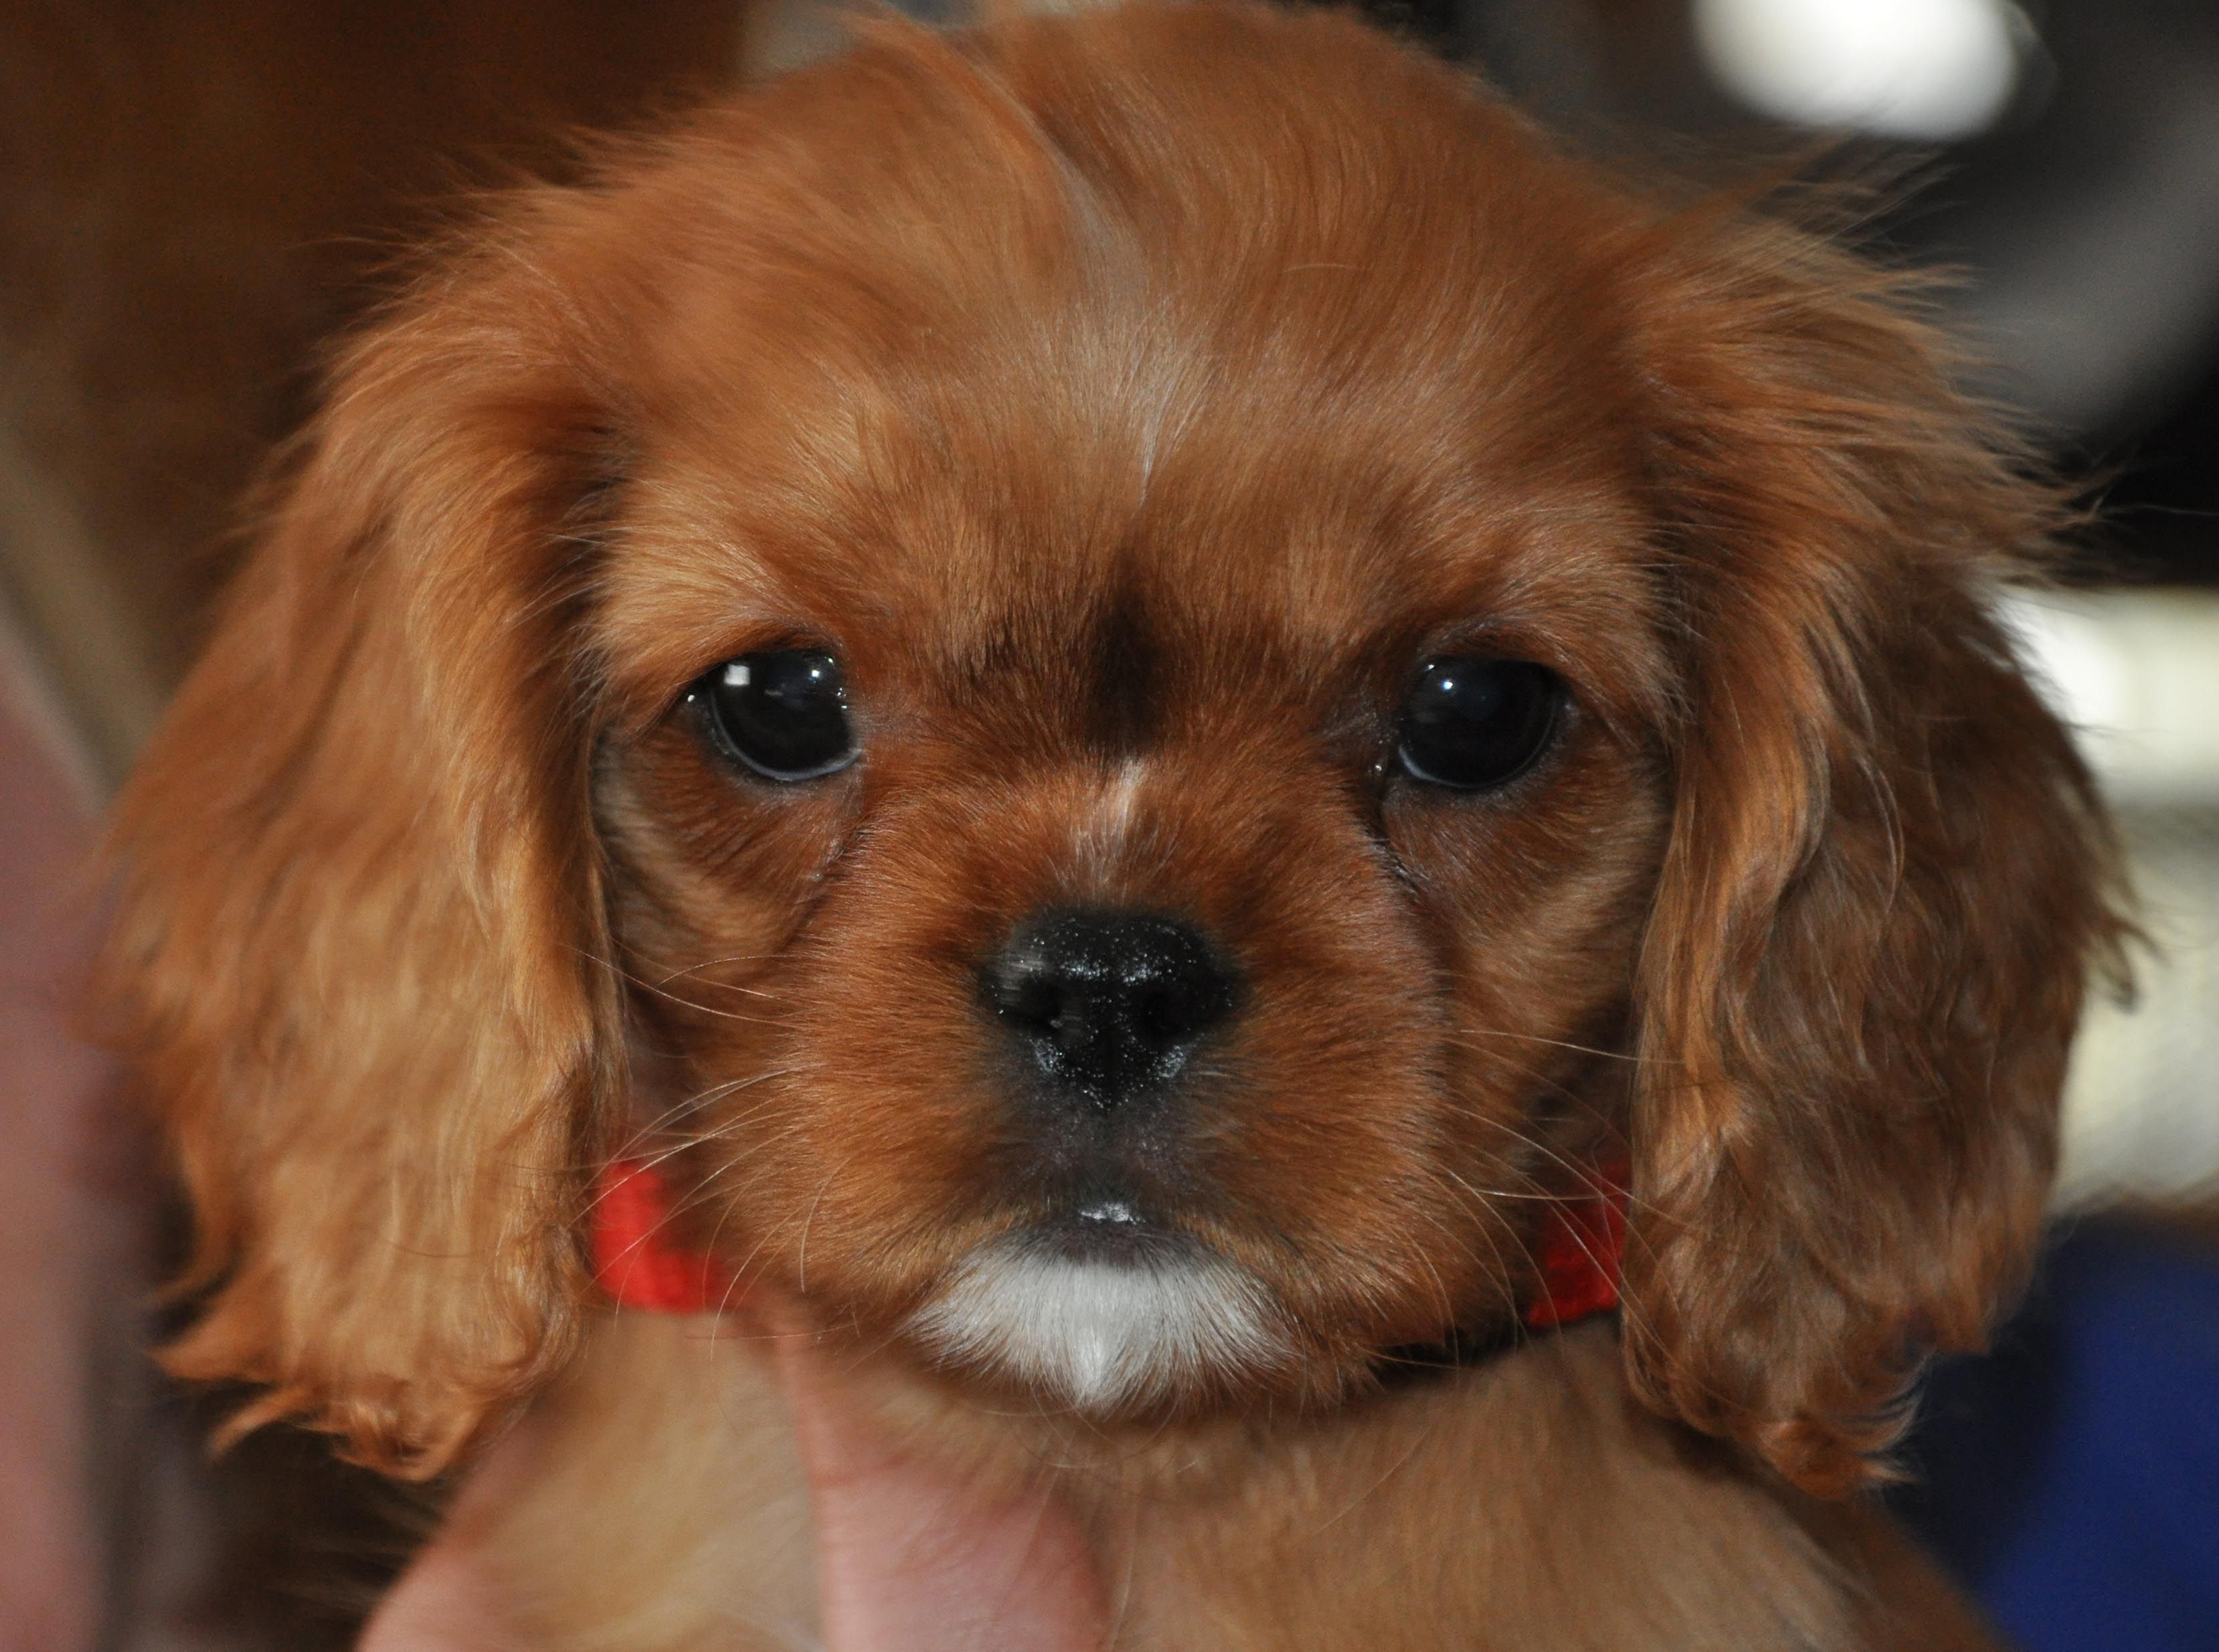 House Of Small Dogs Breeds Image Search Breeds Of Small House Dogs Short Haired Dog Breeds Short Haired Dogs Small Dog House